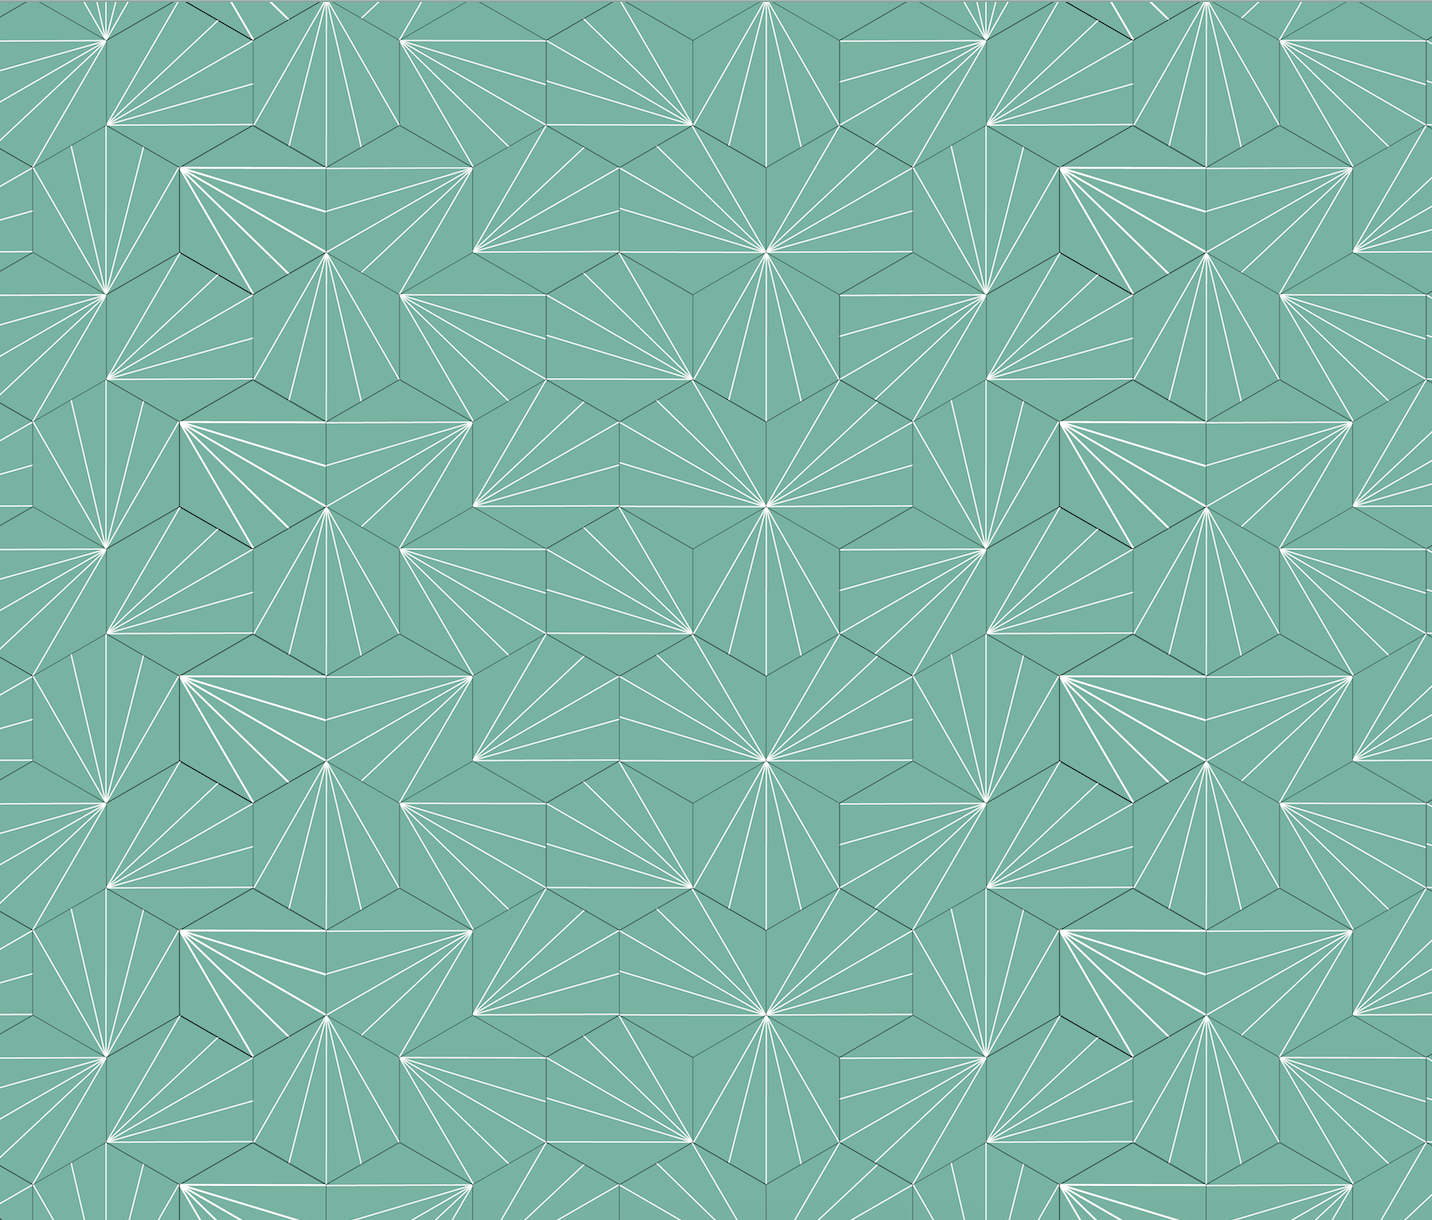 Patterns design - white tropical leaves on green background tilework design